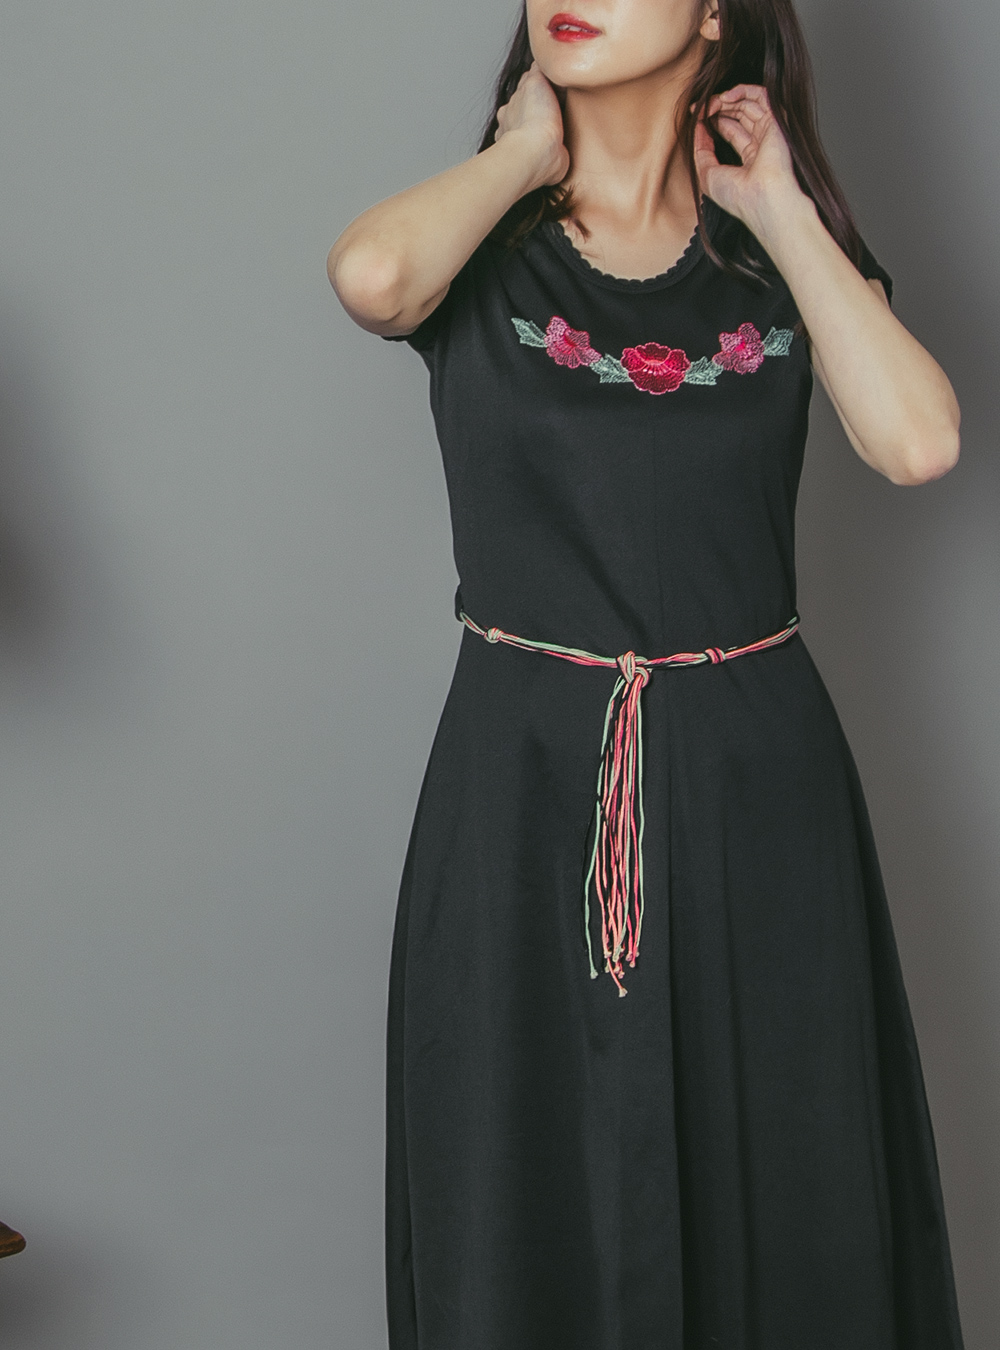 1970's Black Flower Embroidery Dress